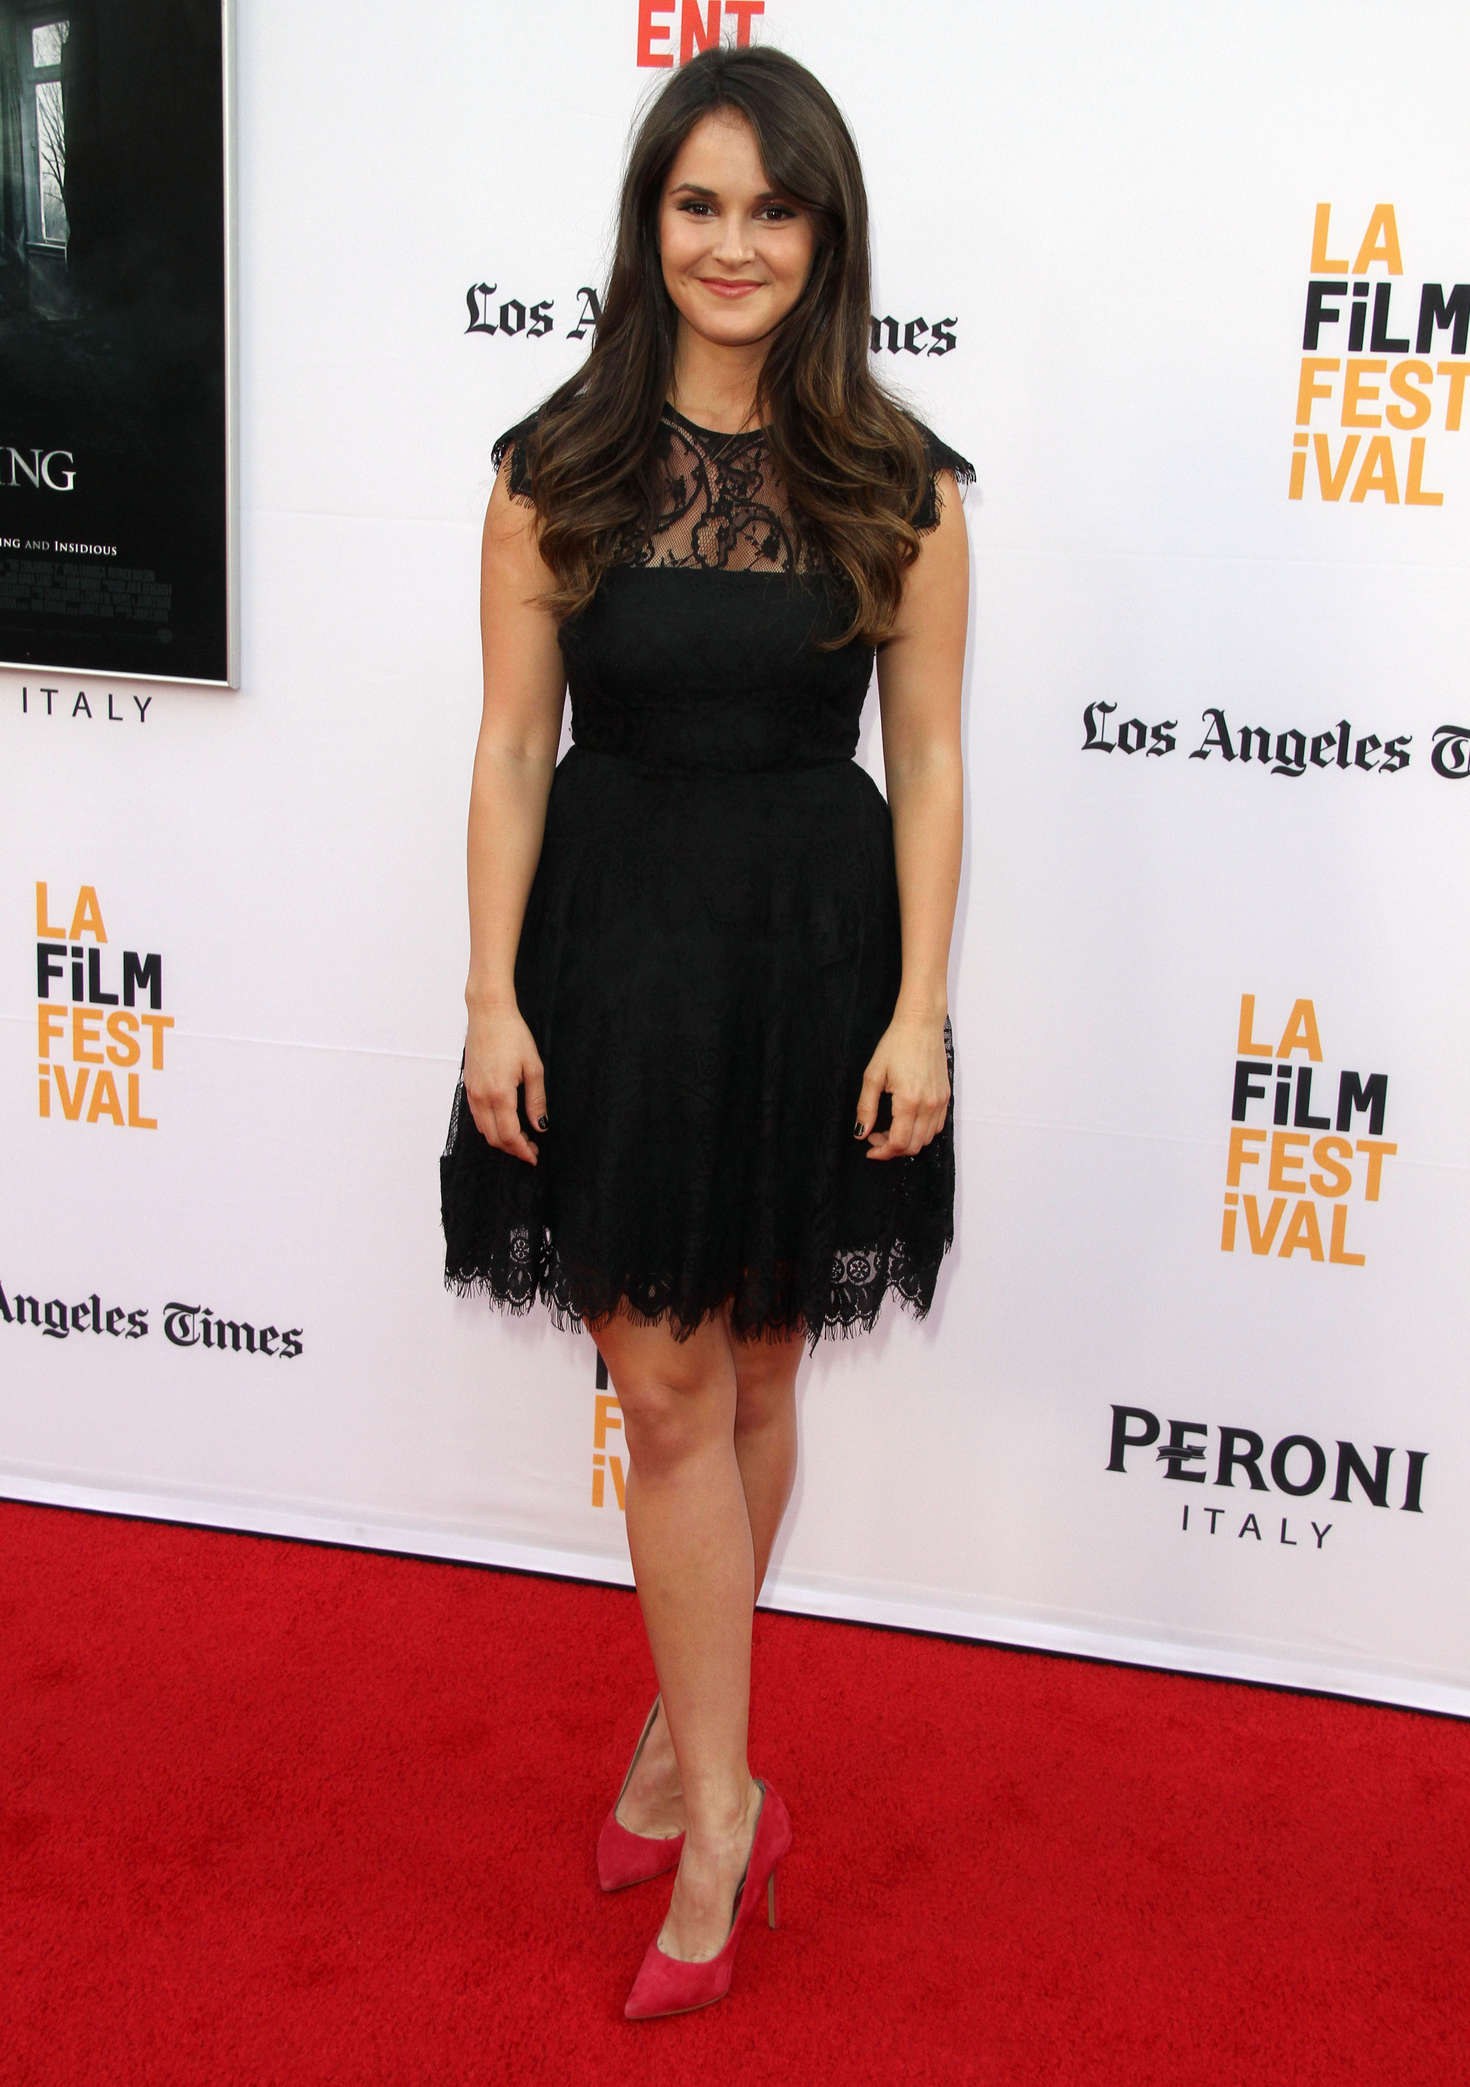 Shanley Caswell: The Conjuring 2 Premiere -04 - GotCeleb